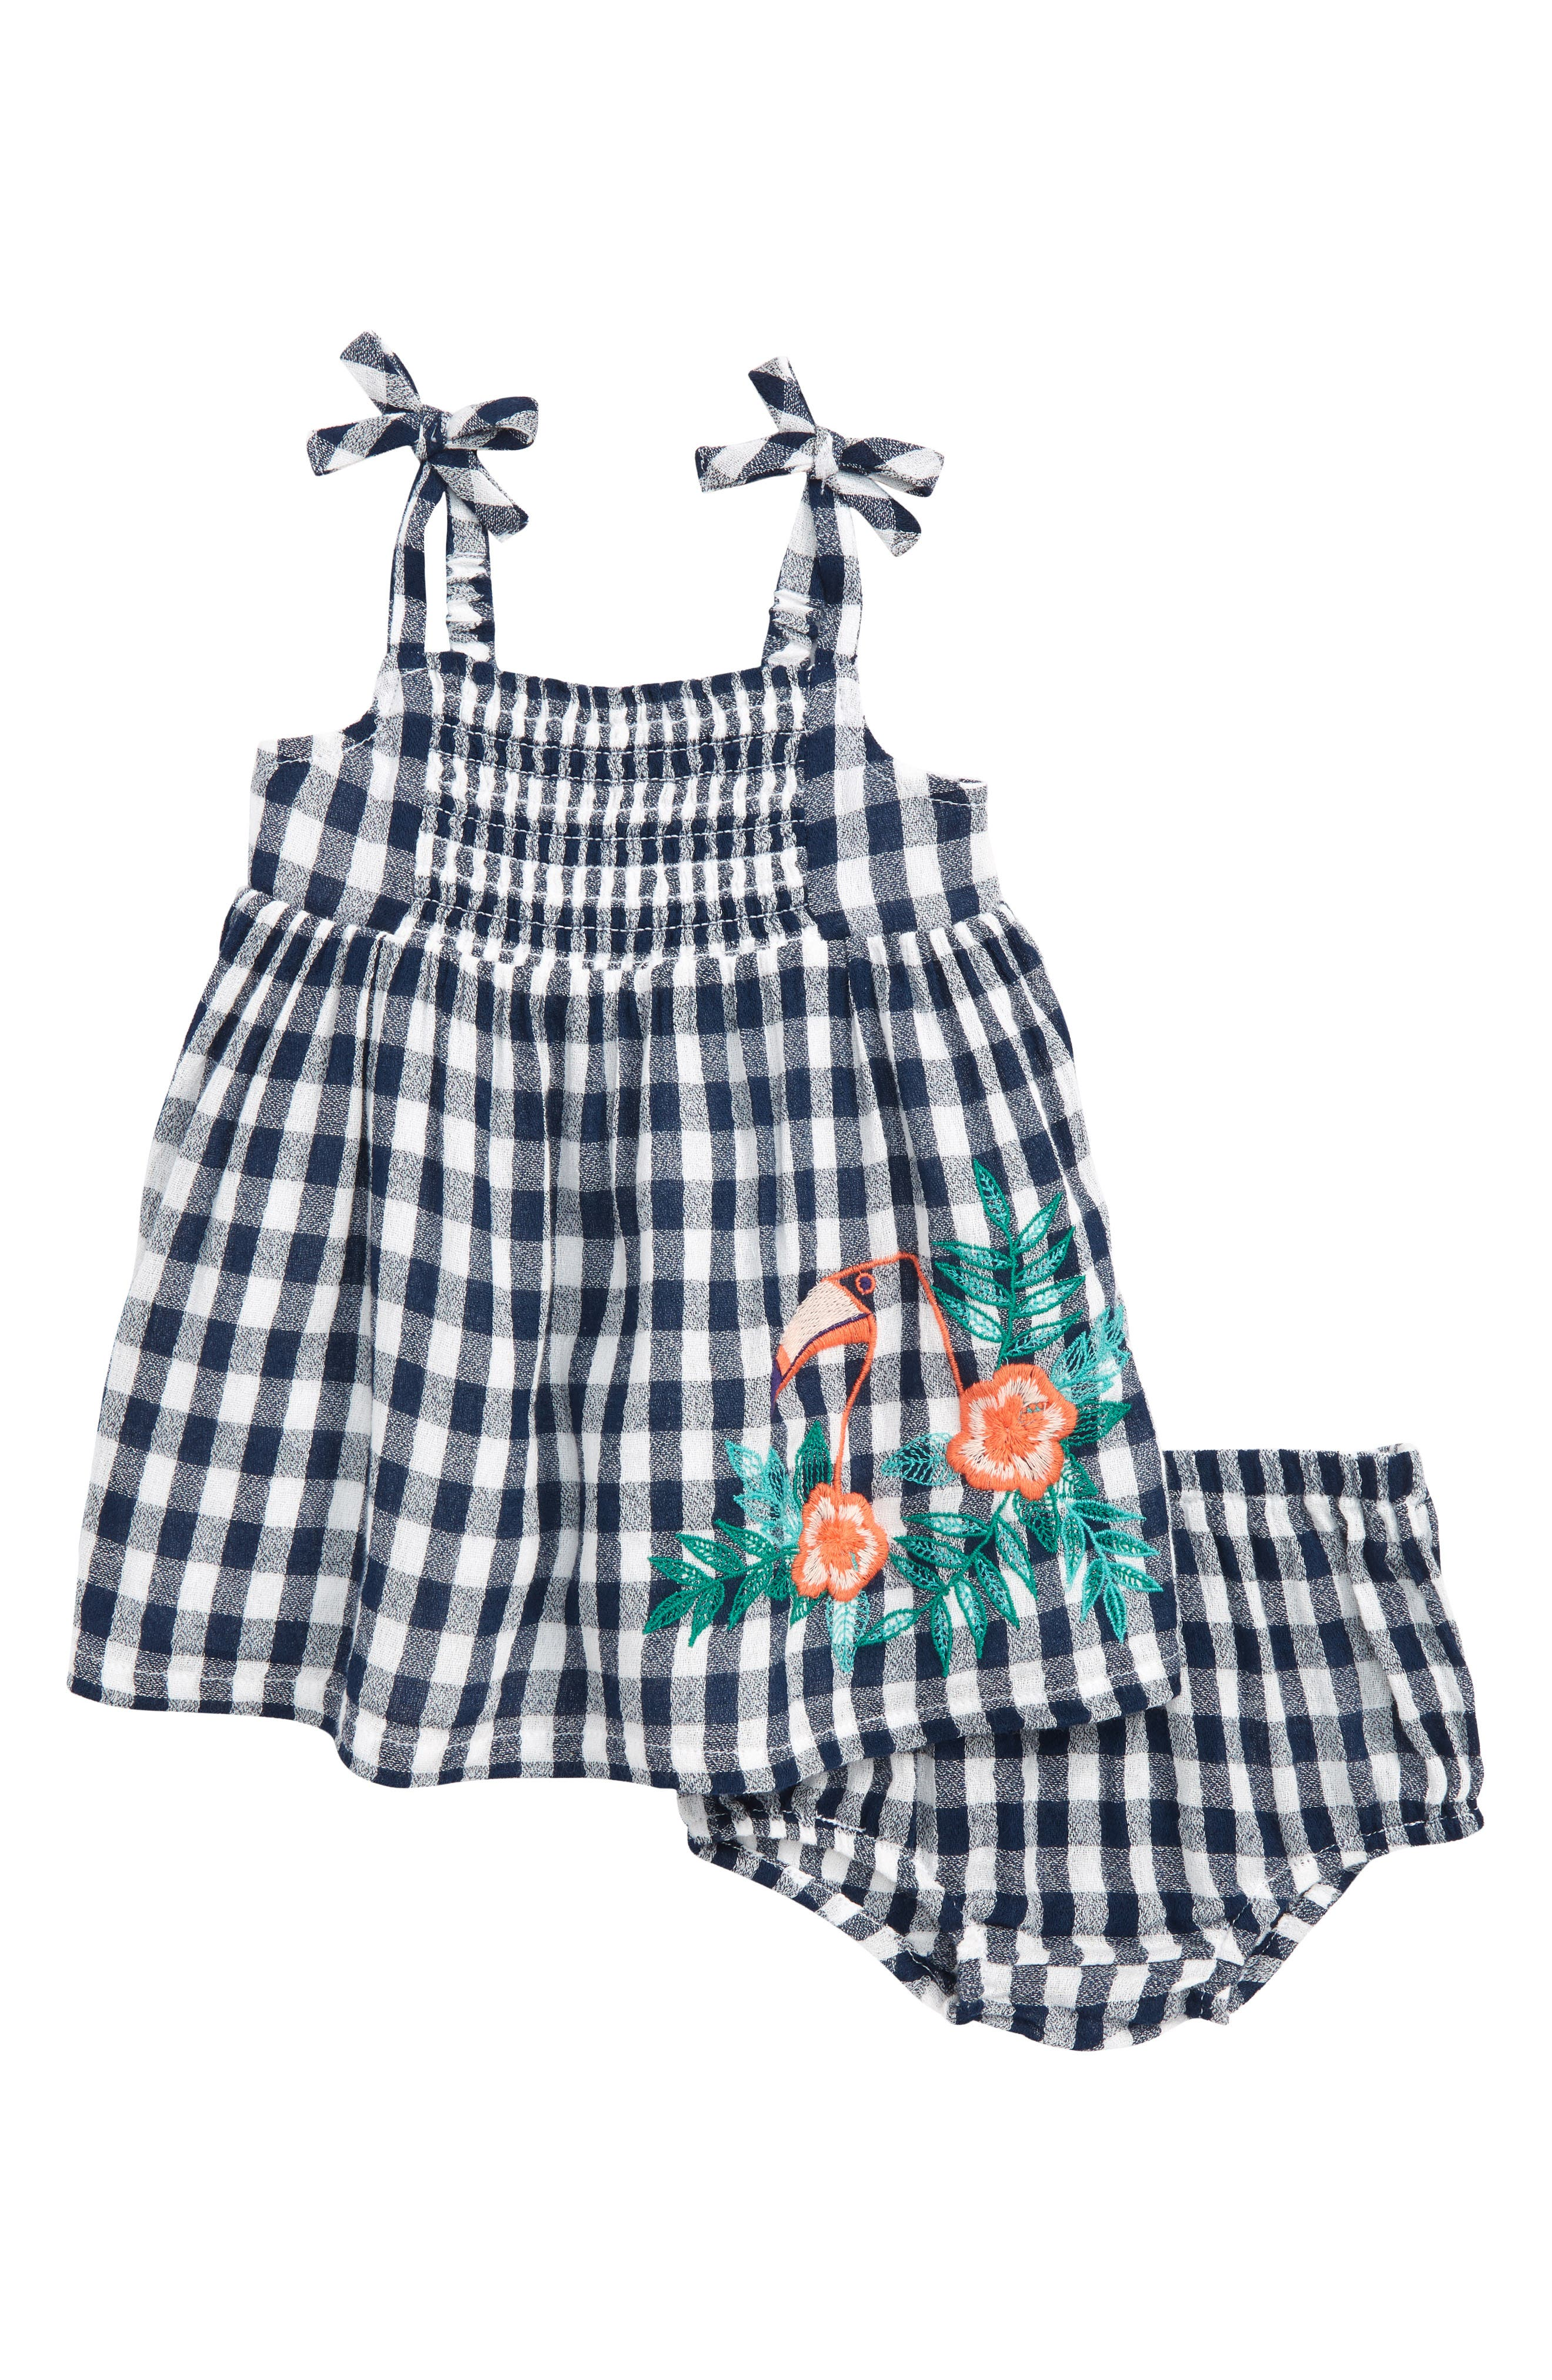 Smocked Gingham Dress,                         Main,                         color, Navy Armada - White Gingham